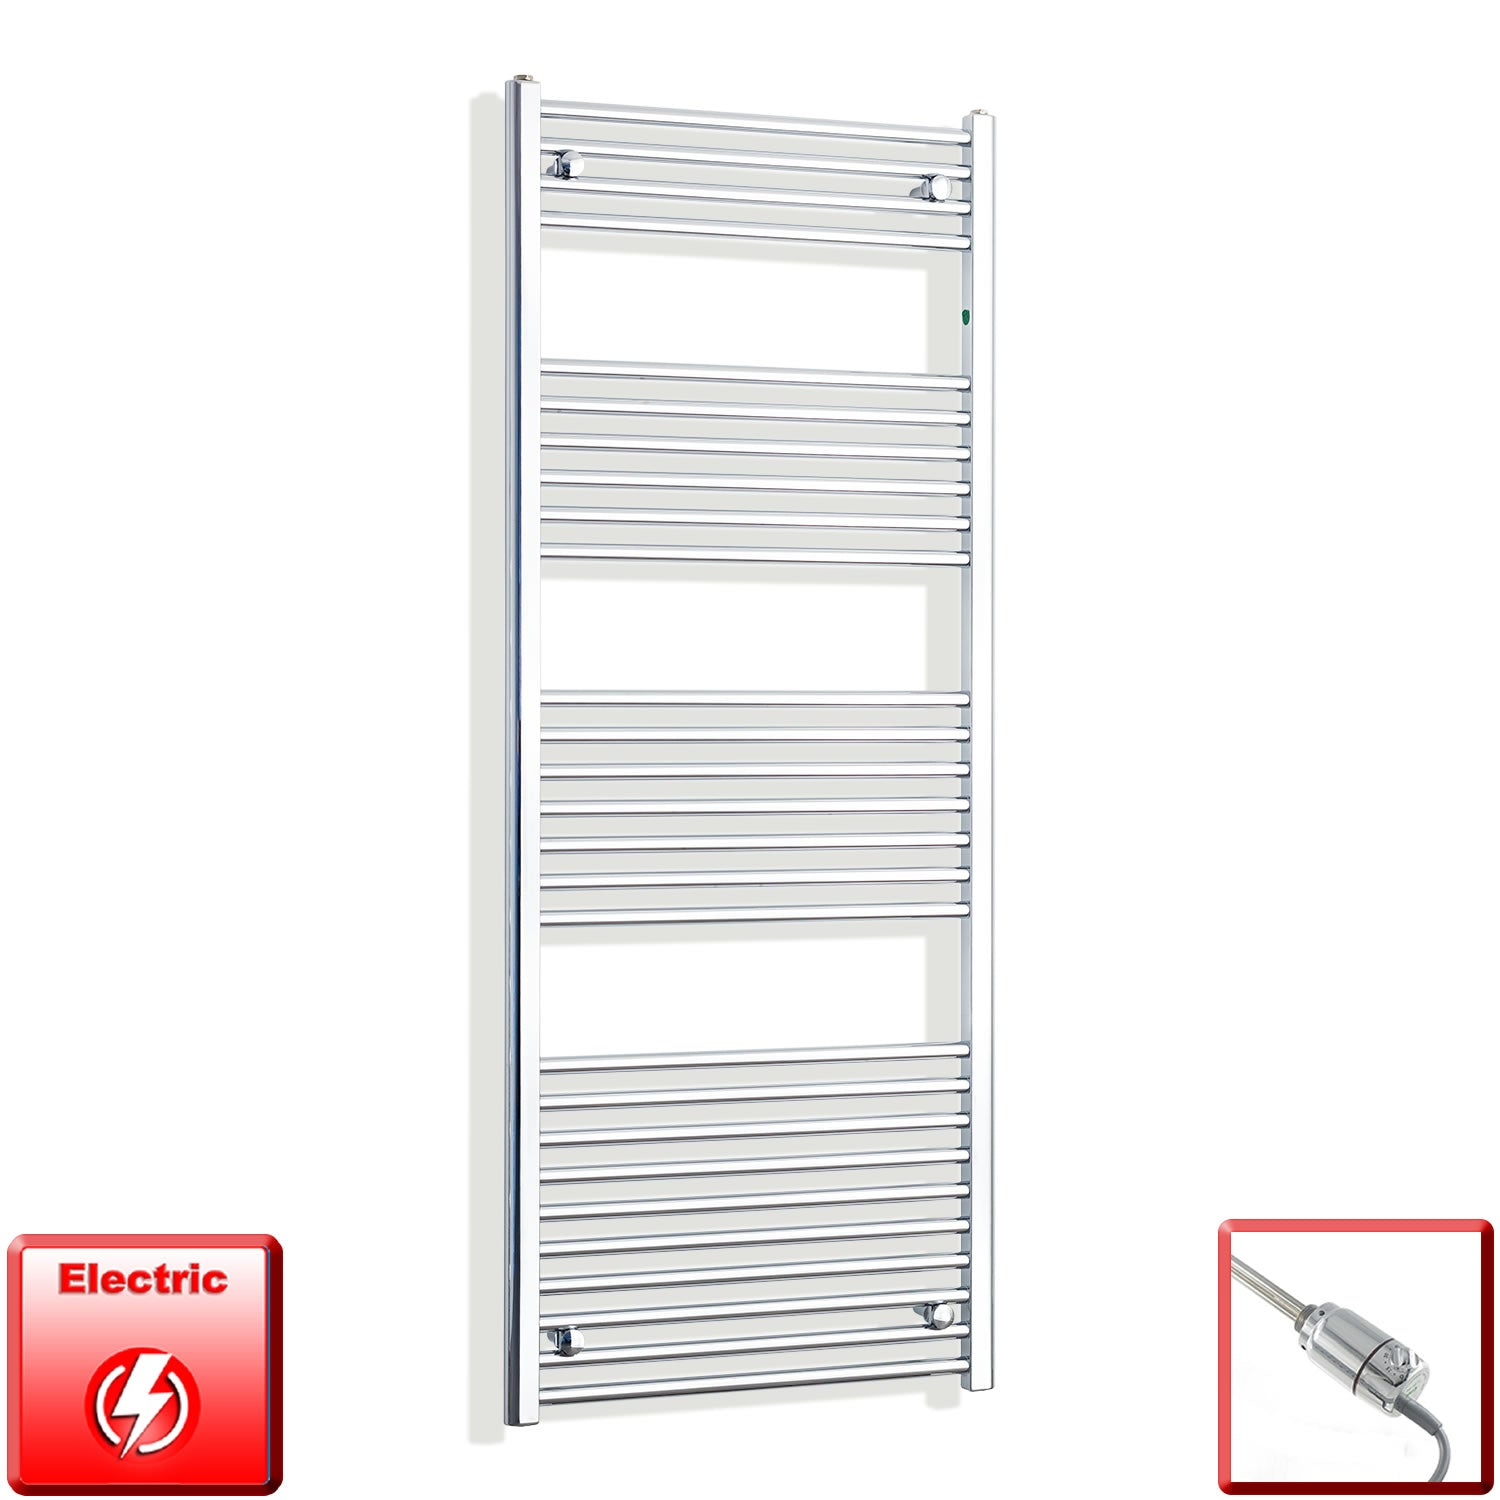 650mm Wide 1600mm High Pre-Filled Chrome Electric Towel Rail Radiator With Thermostatic GT Element